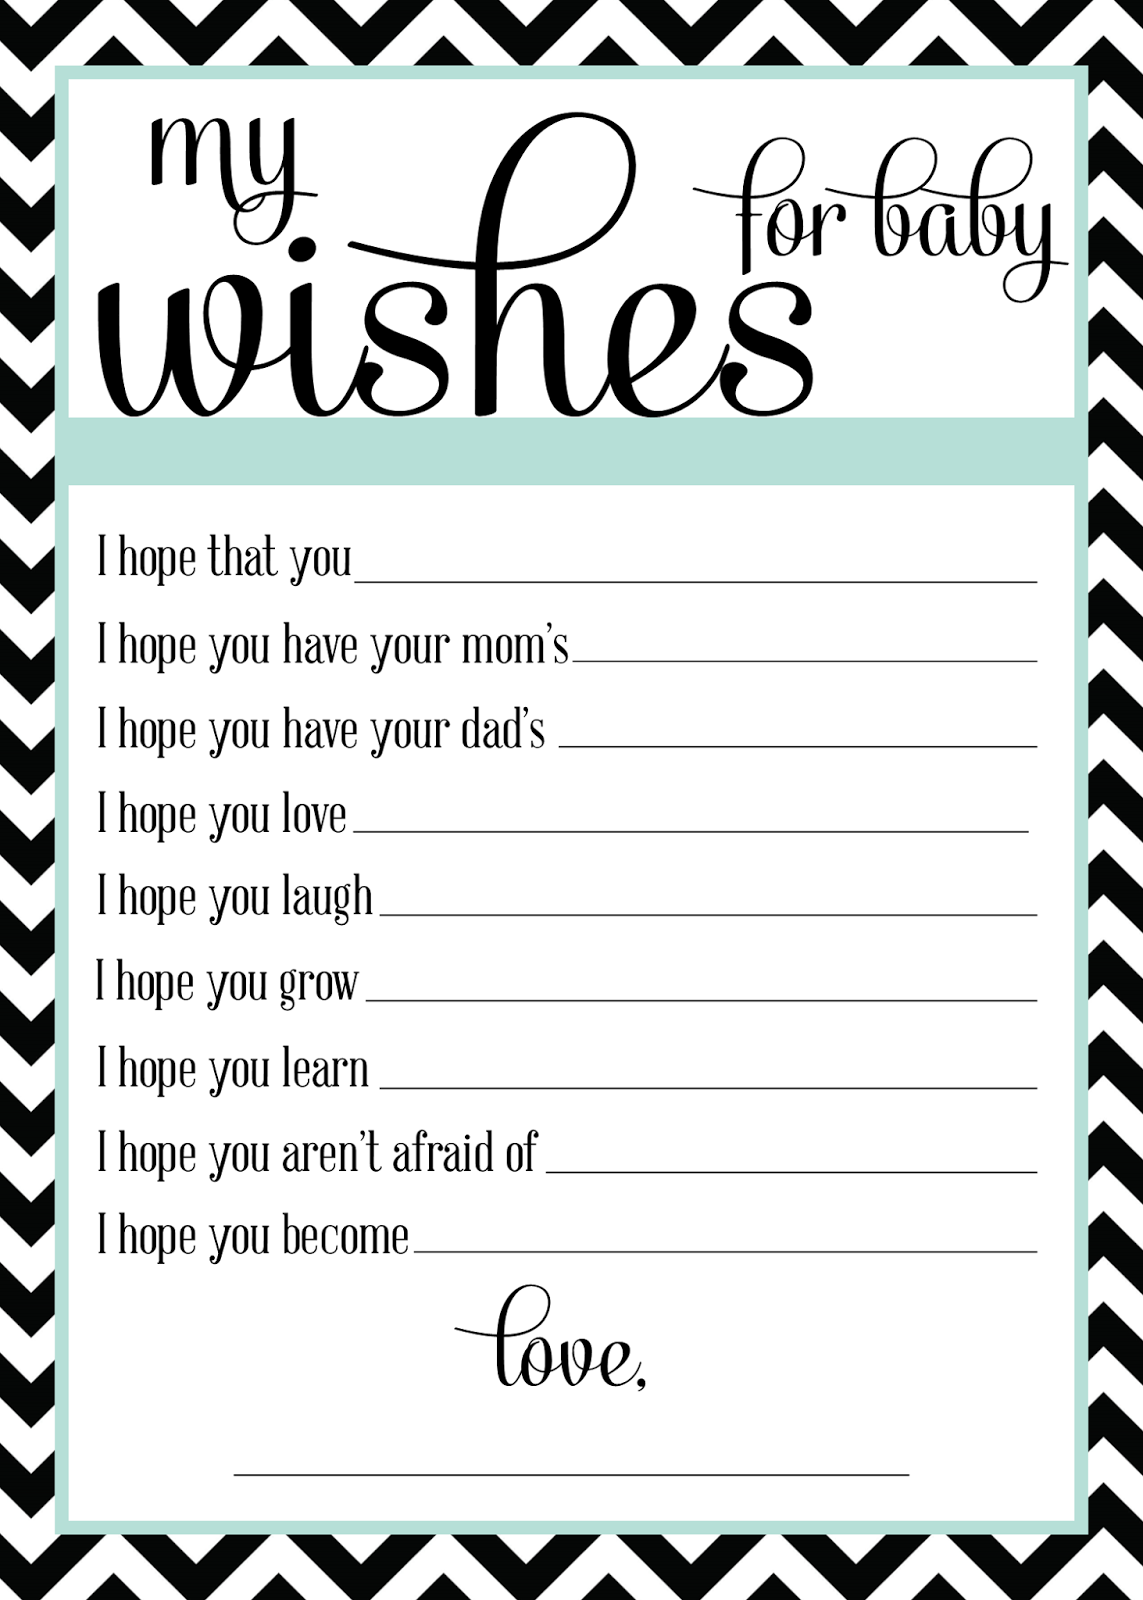 Sugar queens october 2013 for Wishes for baby template printable